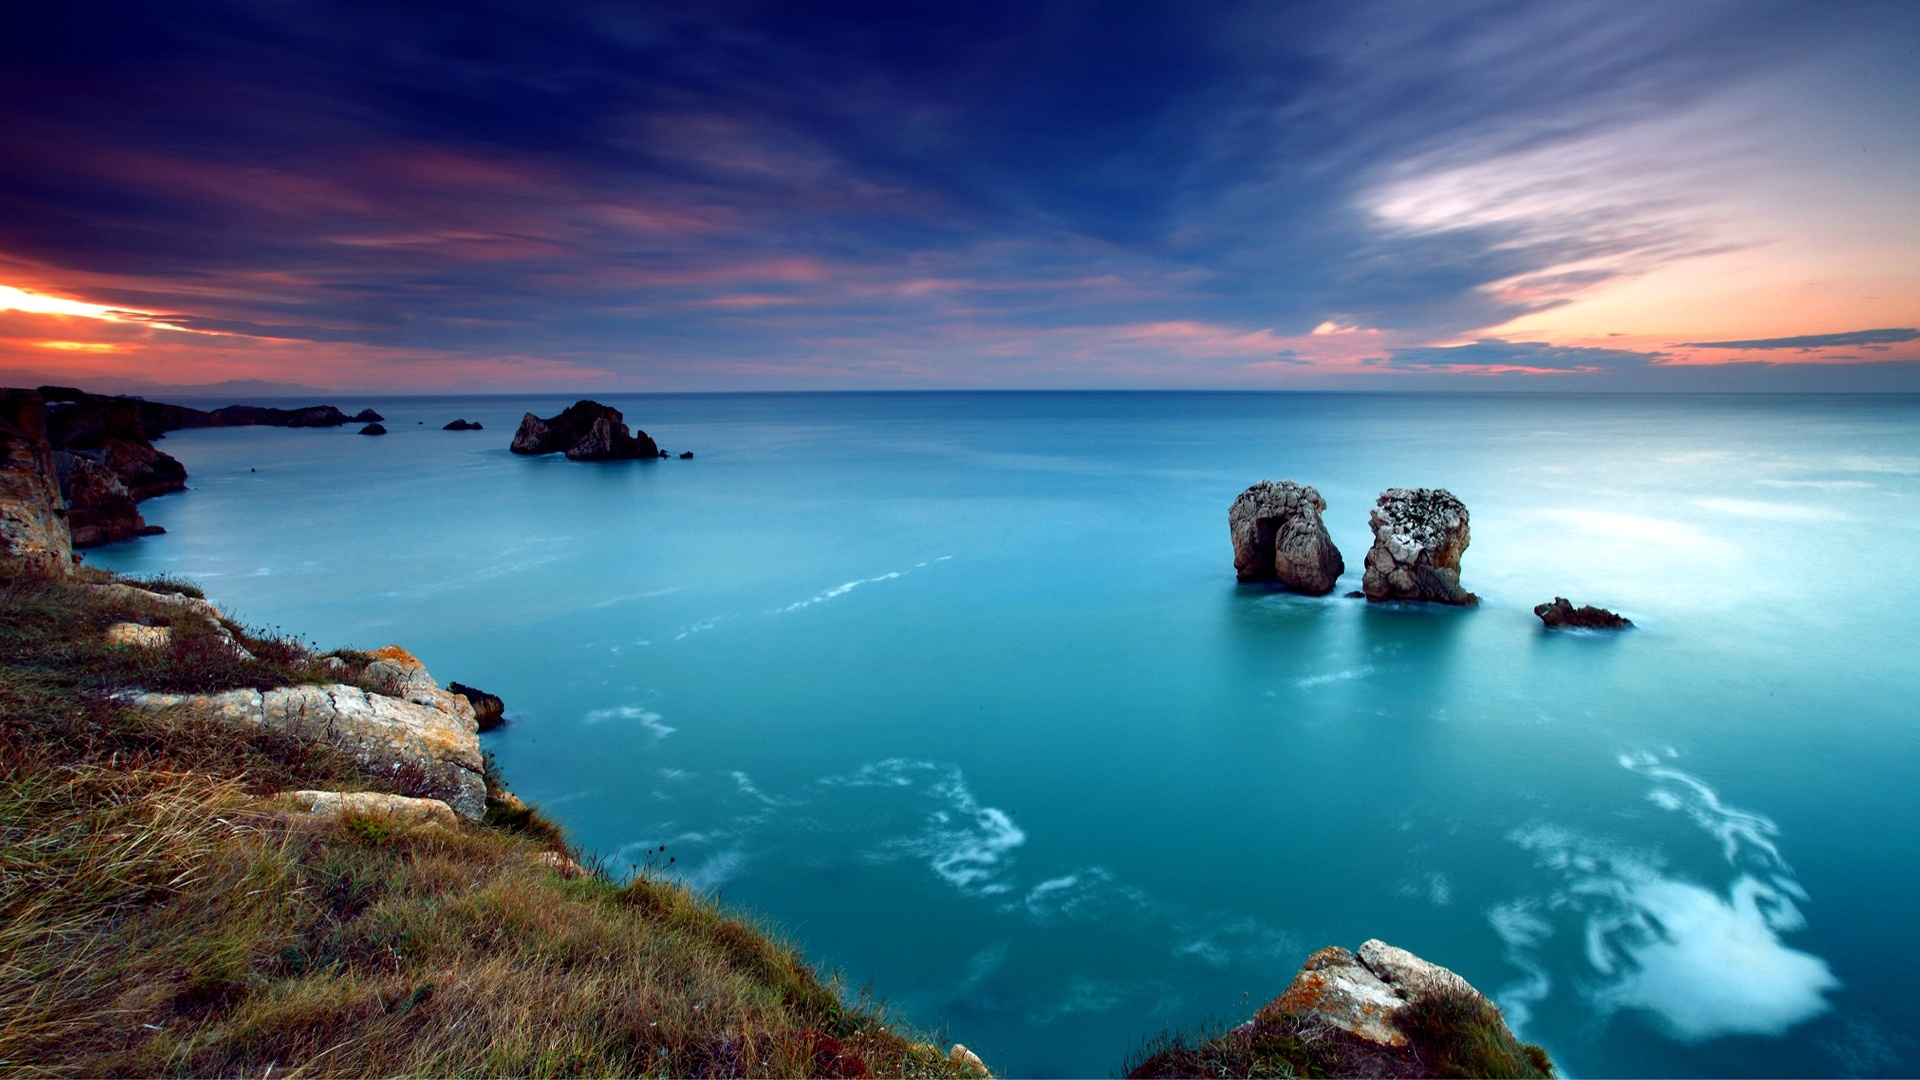 Hdr Coastal Seascape wallpaper